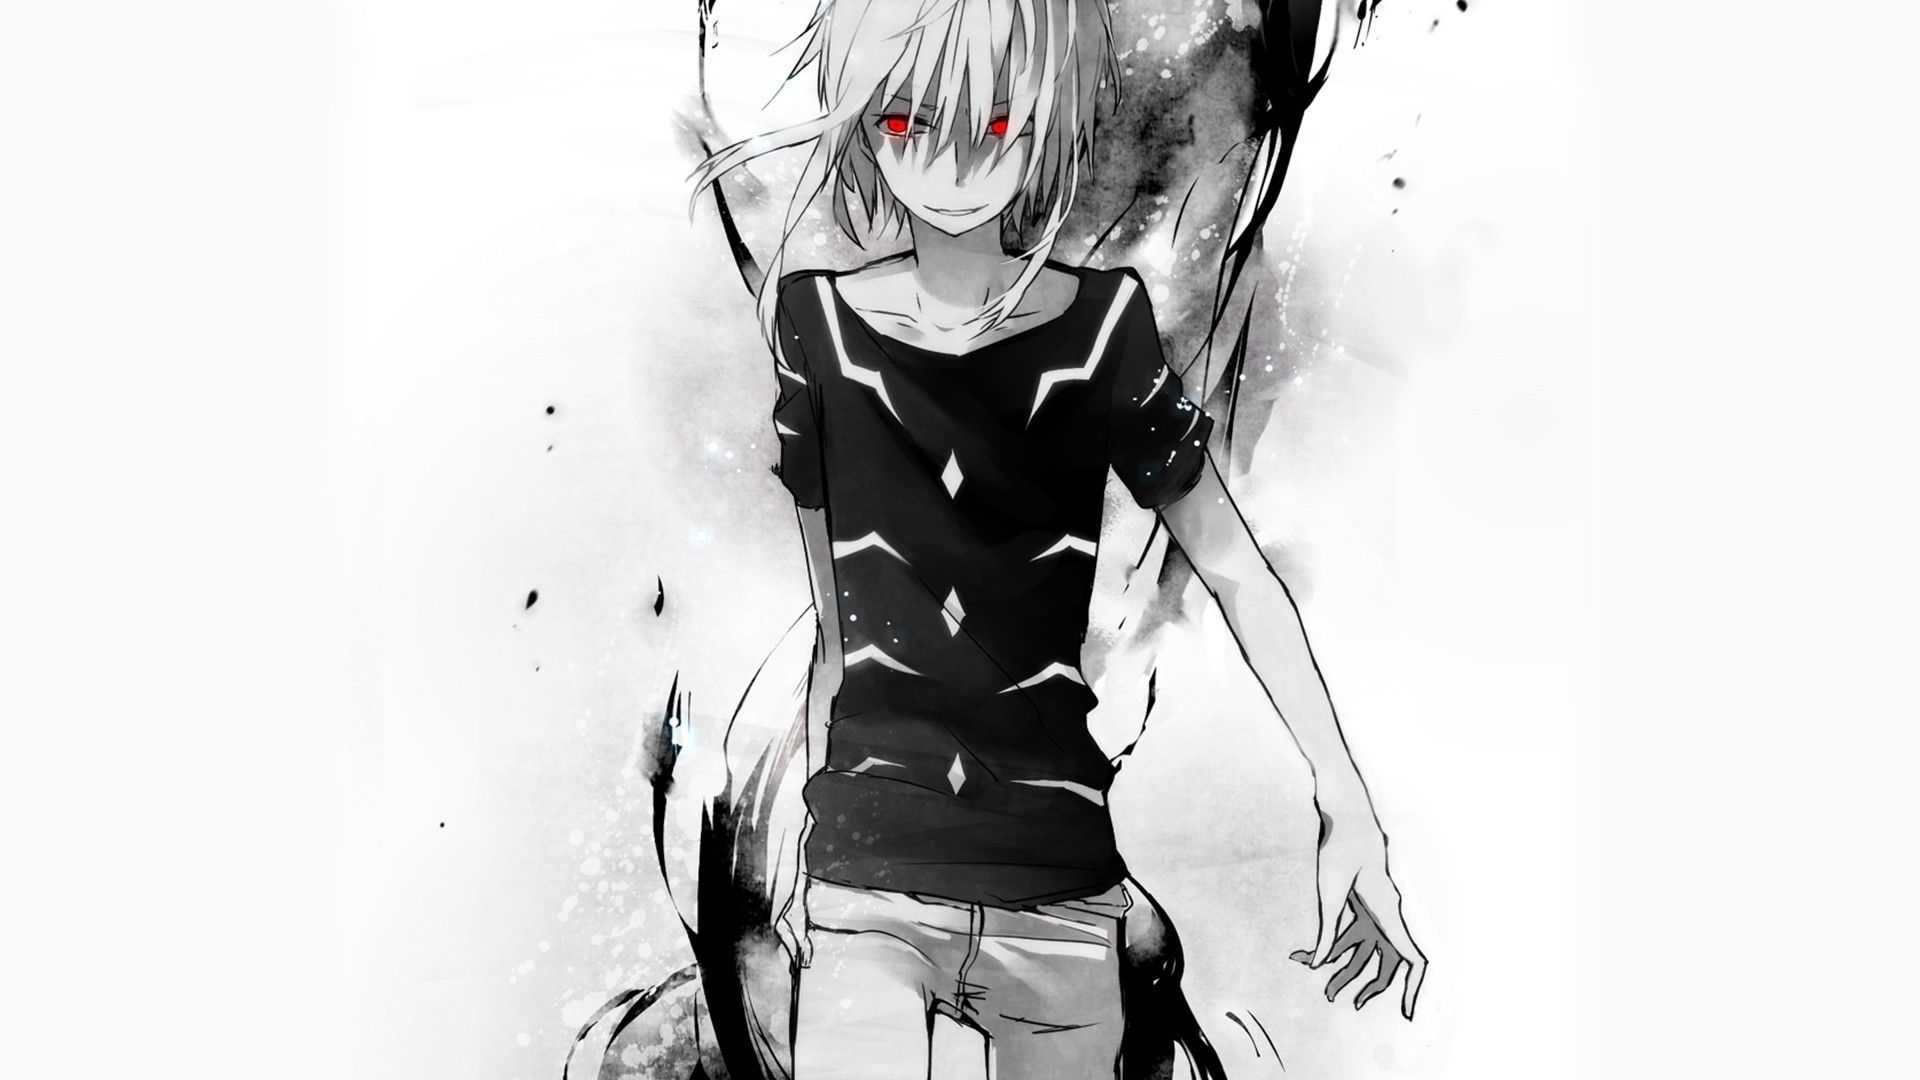 Black And White Anime Wallpapers Top Free Black And White Anime Backgrounds Wallpaperaccess